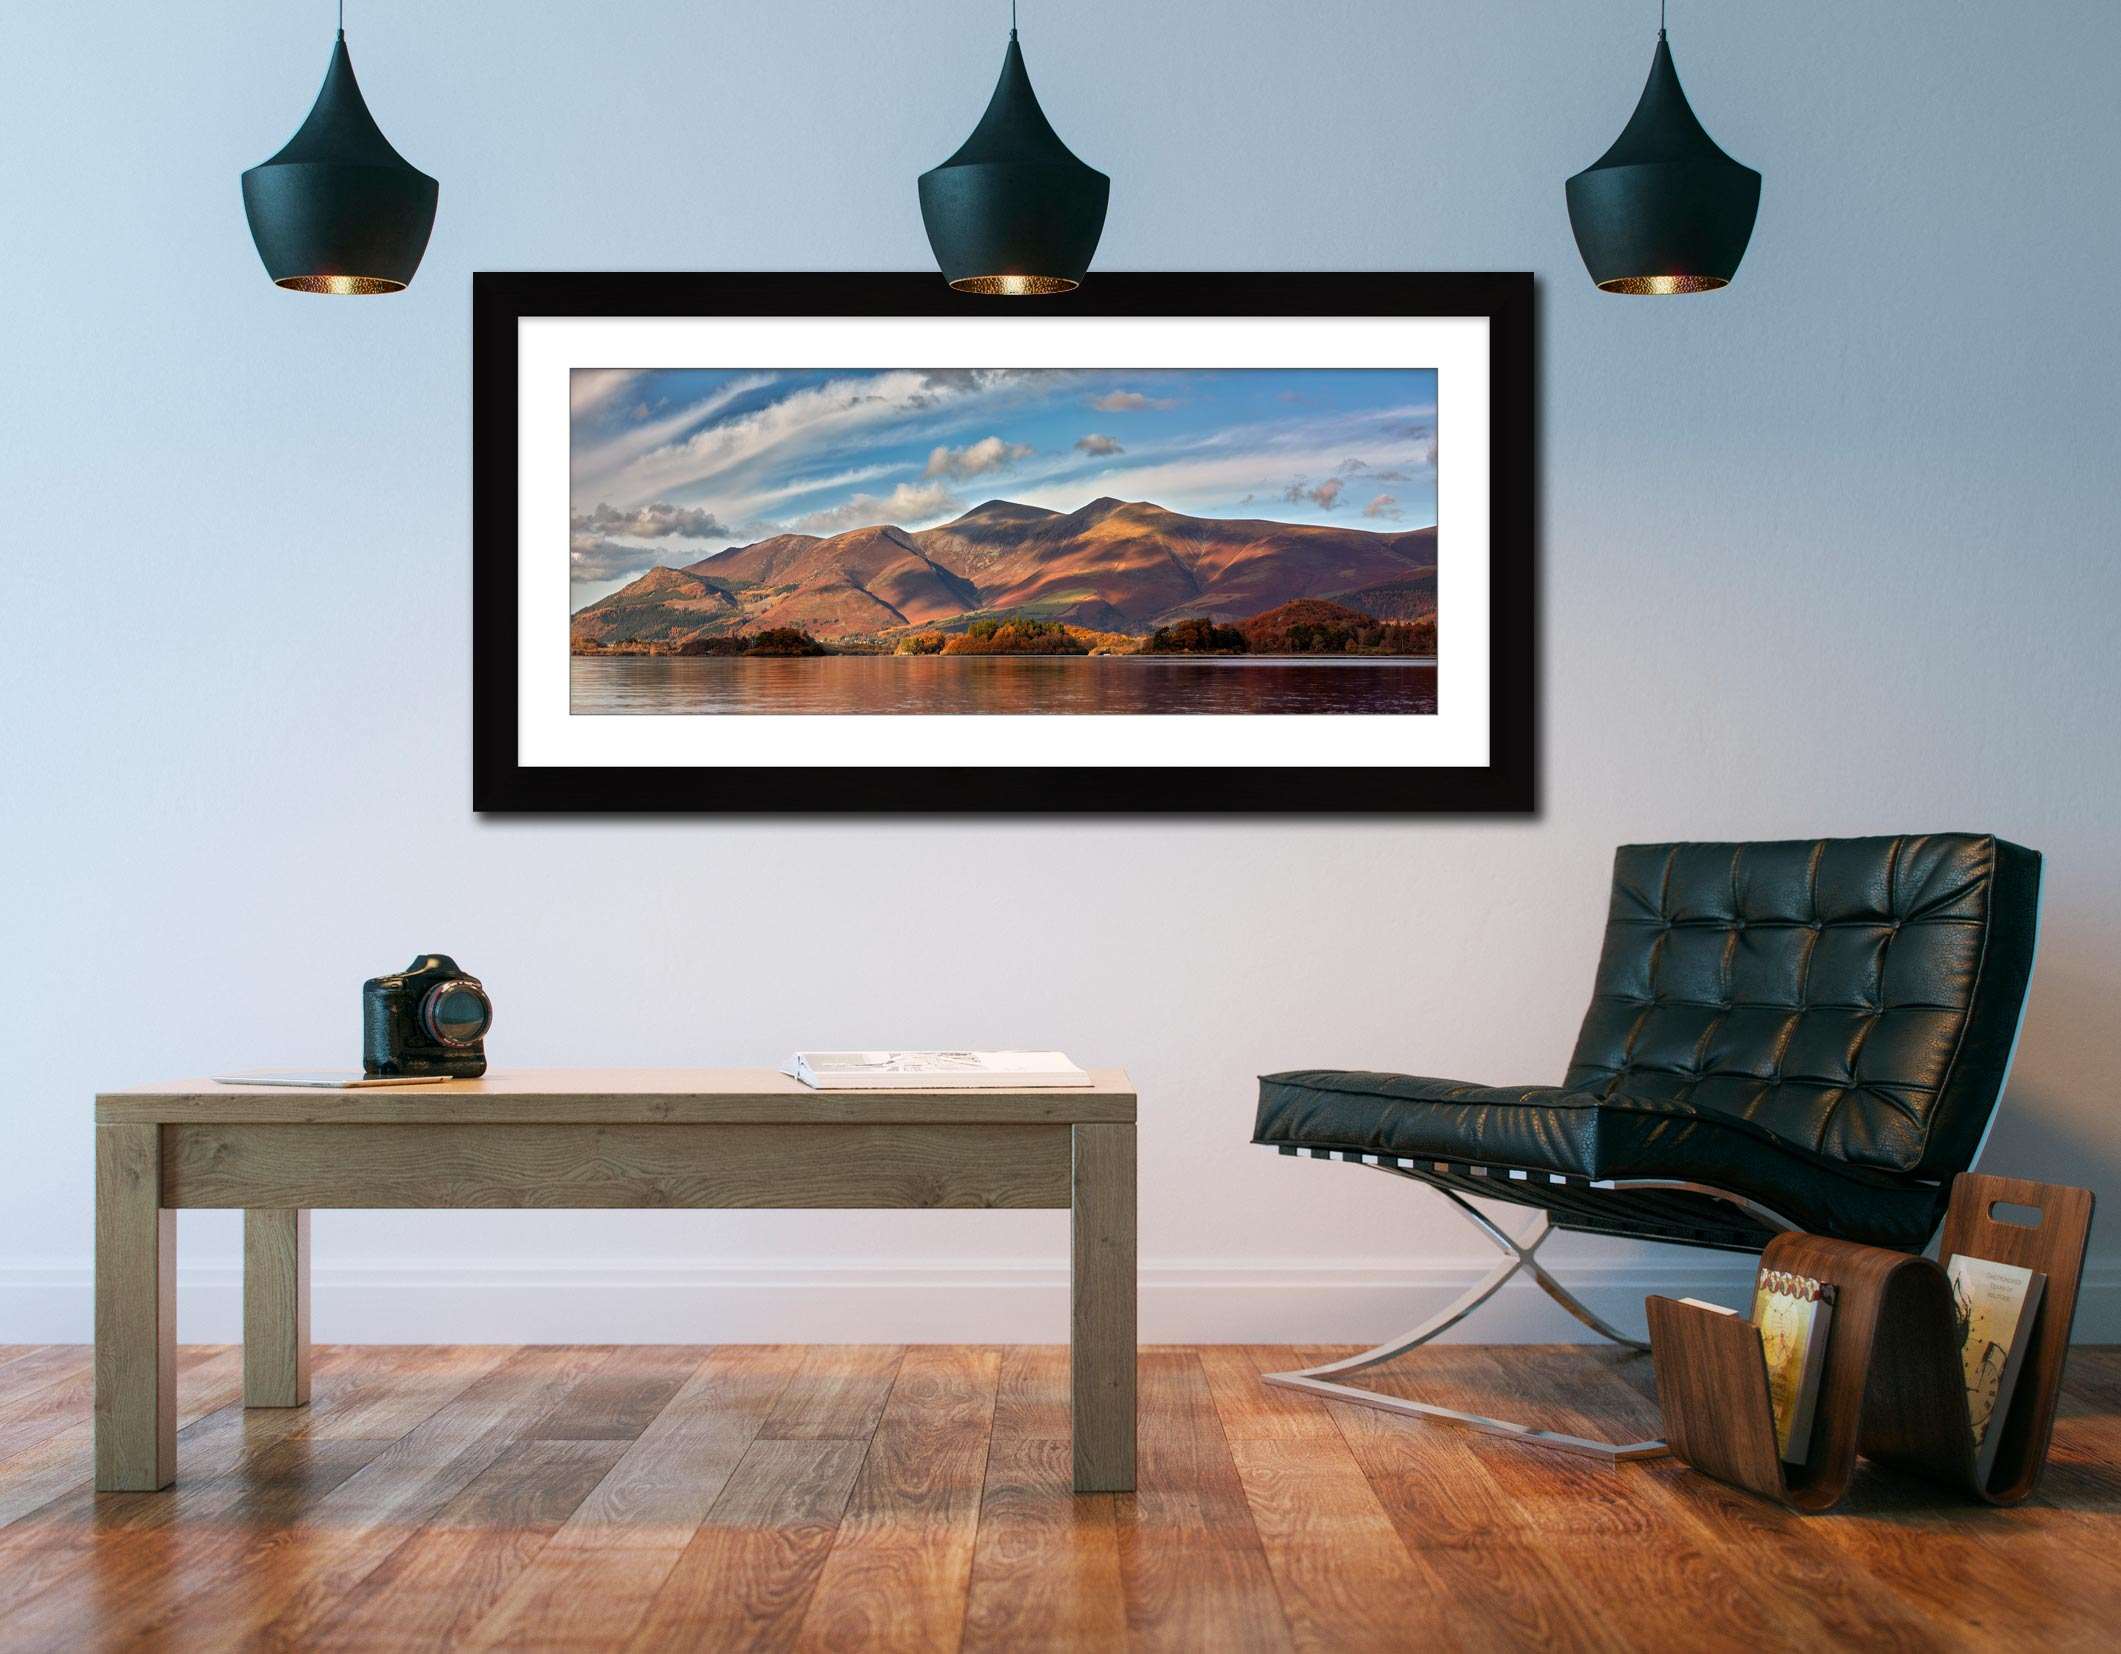 Skiddaw Sunshine - Framed Print with Mount on Wall